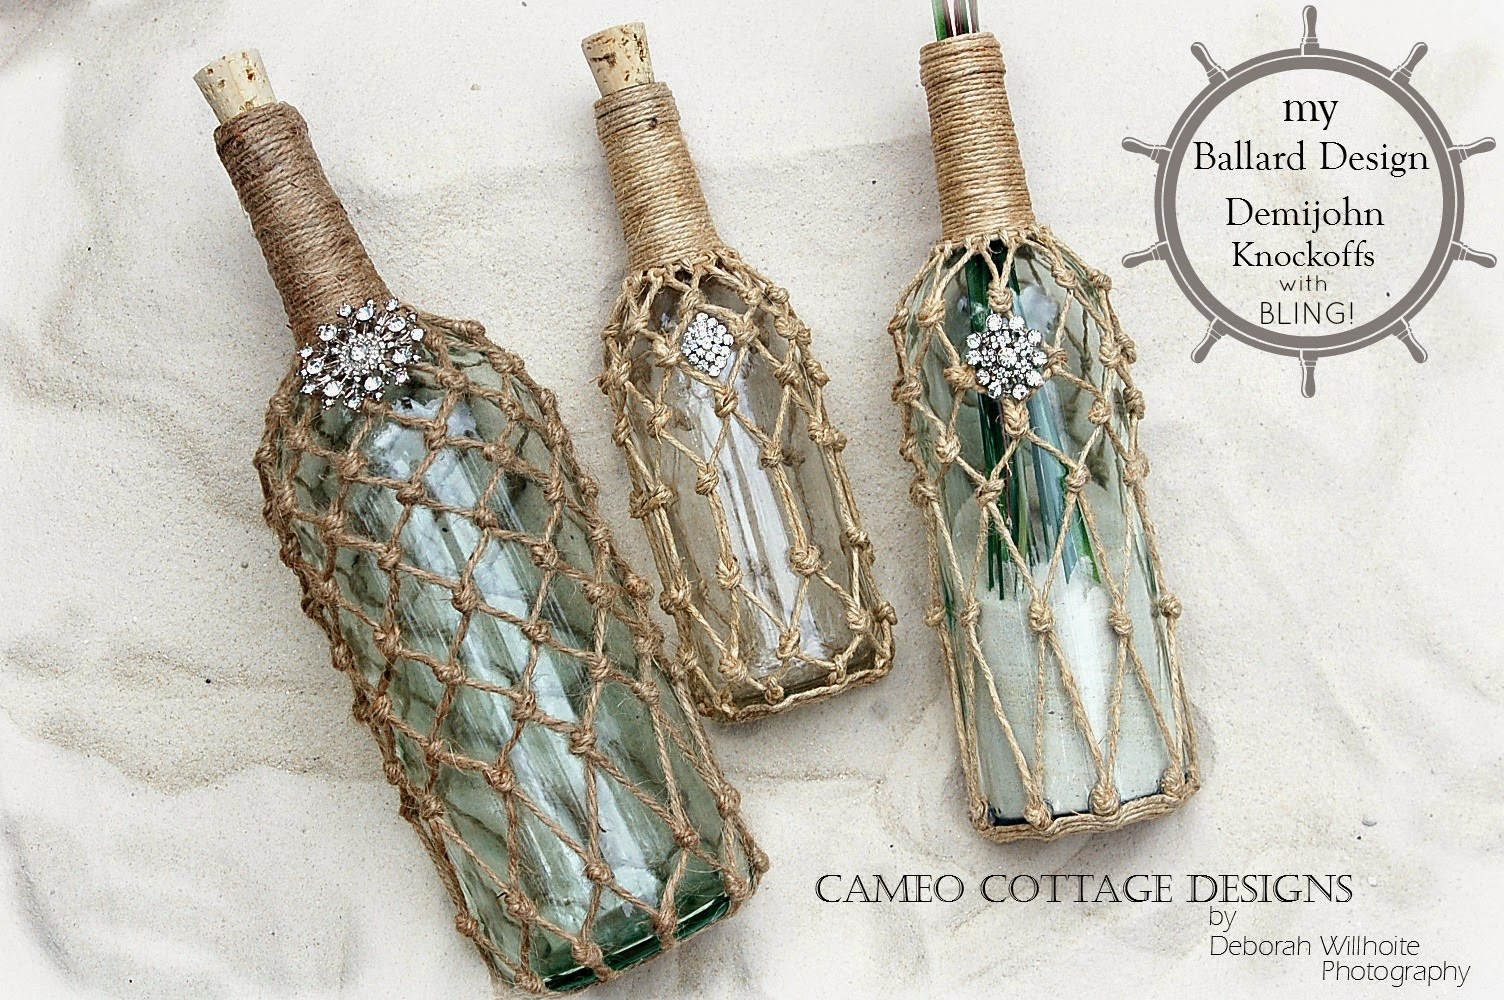 cameo cottage designs my ballard design demijohn knock off only i have seen fish netted demijohns all over the stores in all sizes and shapes but lordy are they expensive even to buy the bottles without the net could